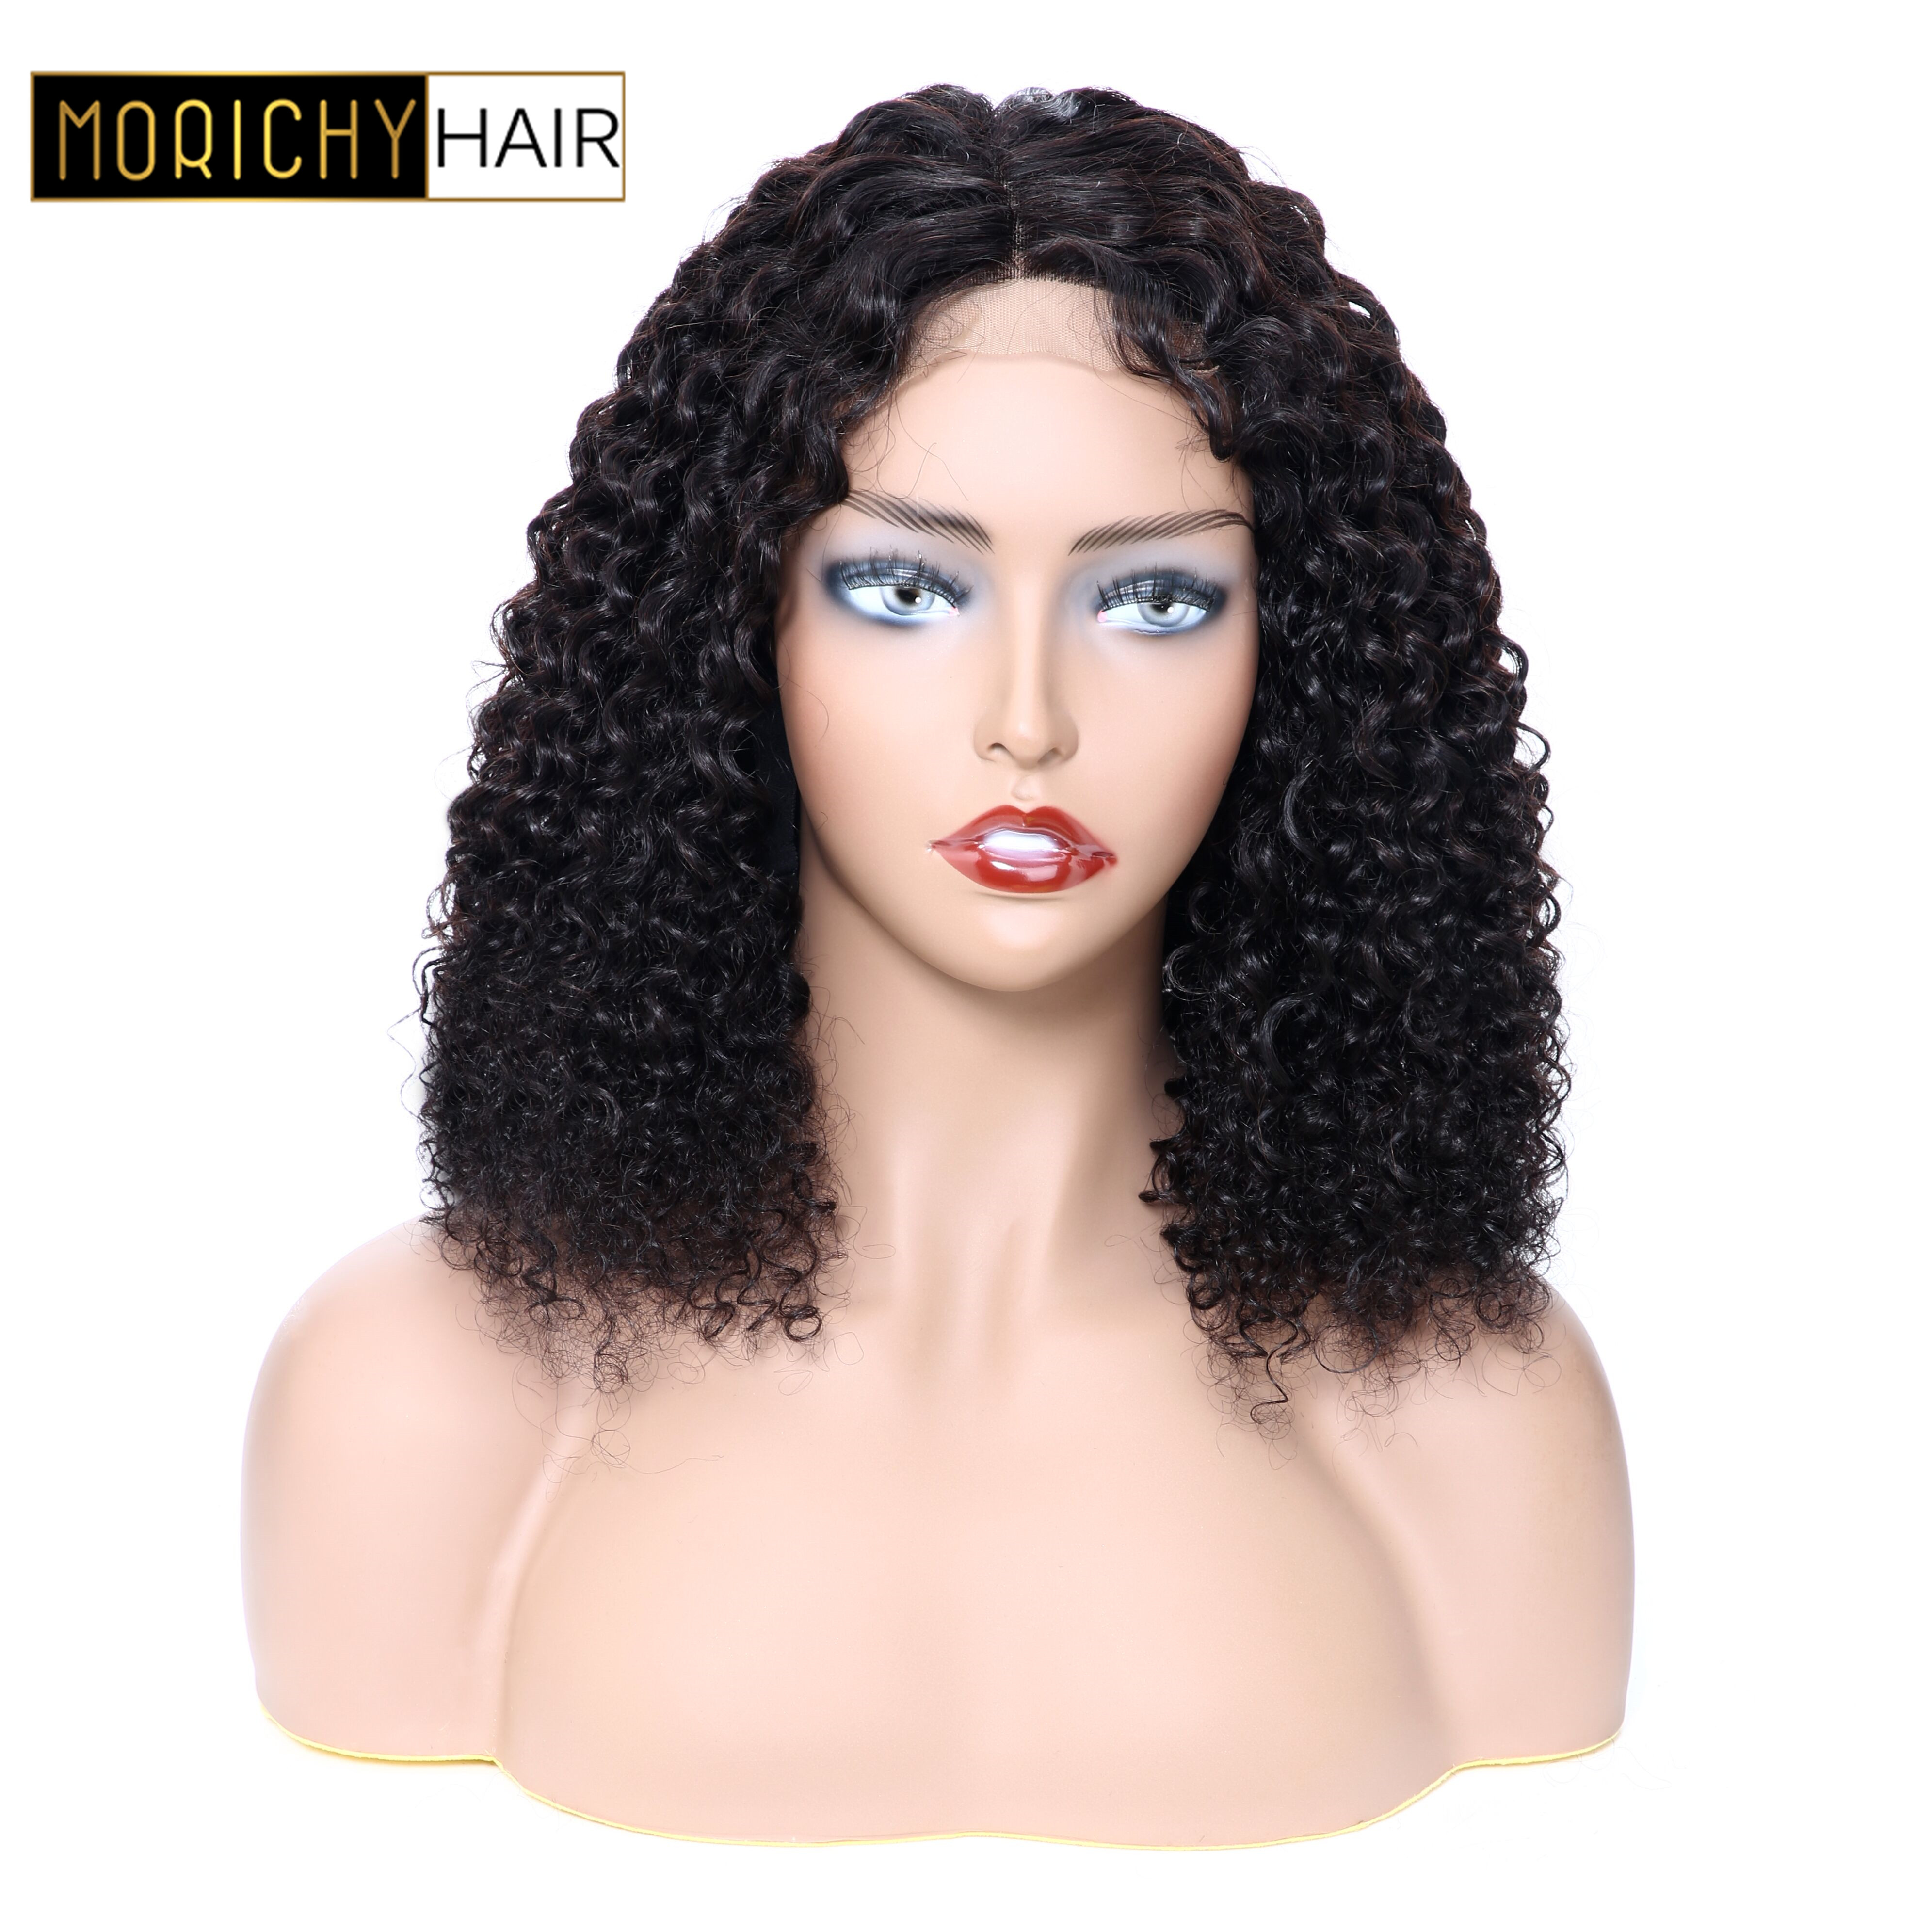 Morichy Curly 4x4 Lace Closure Human Hair Wigs Brazilian M Non-Remy Short Bob Wigs Pre Plucked Hairline 150% Density